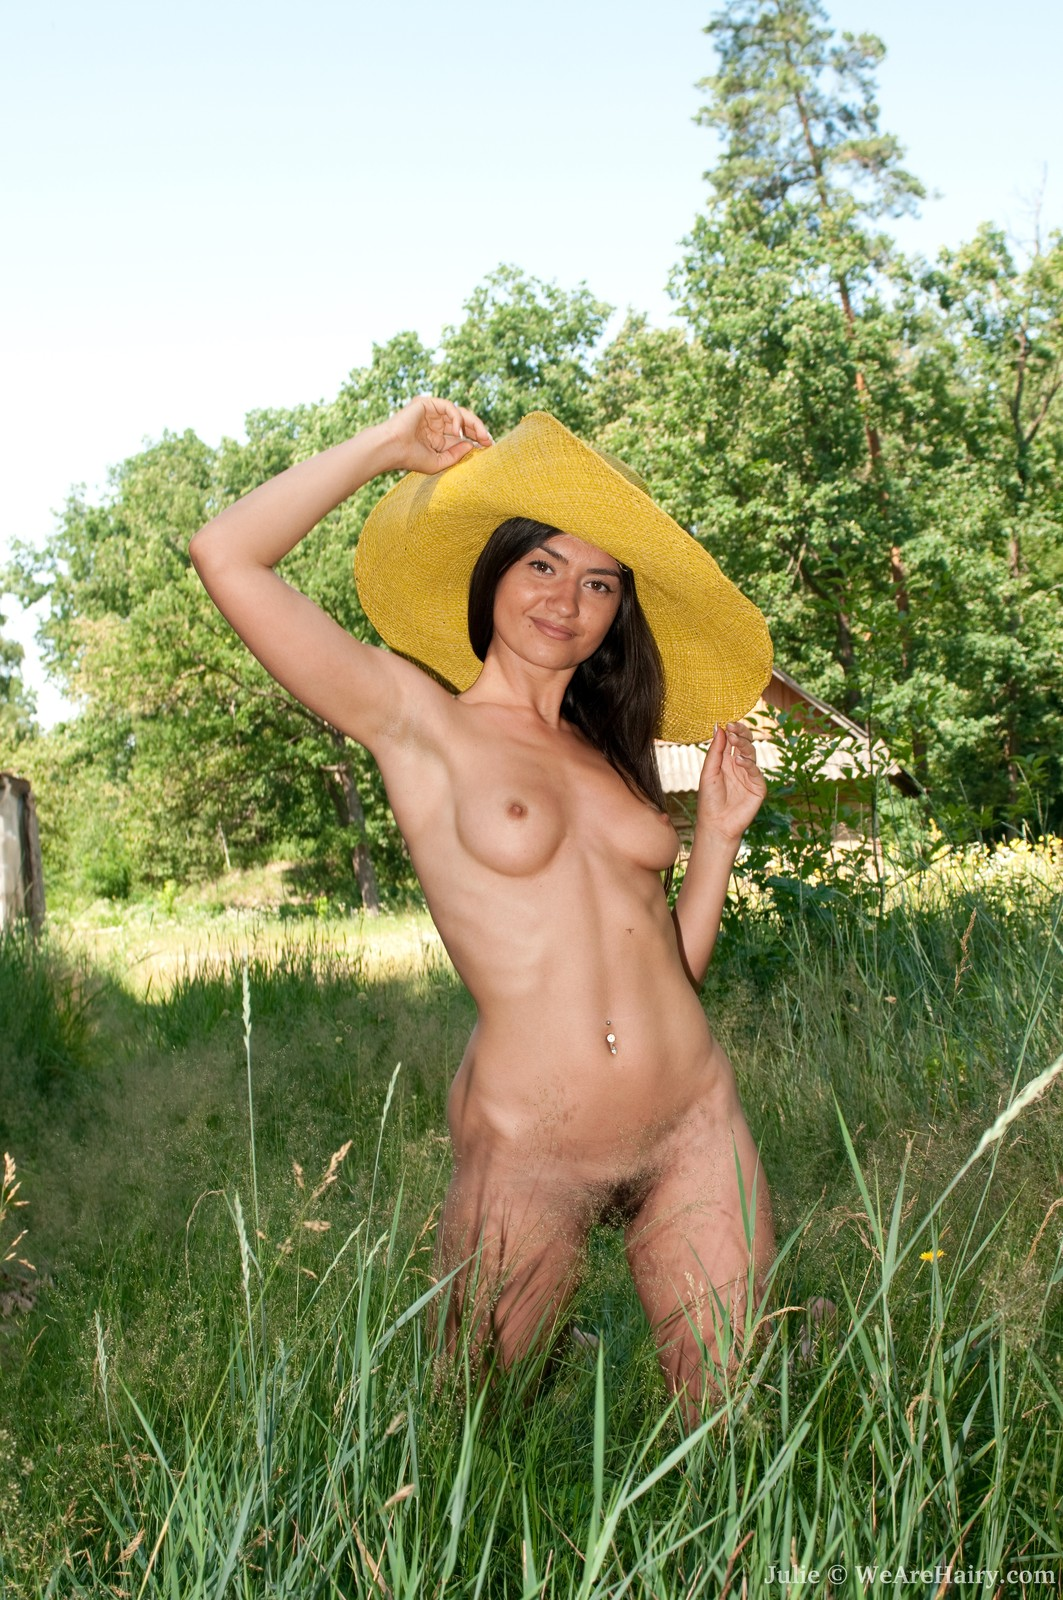 from Markus julie chang naked pussy